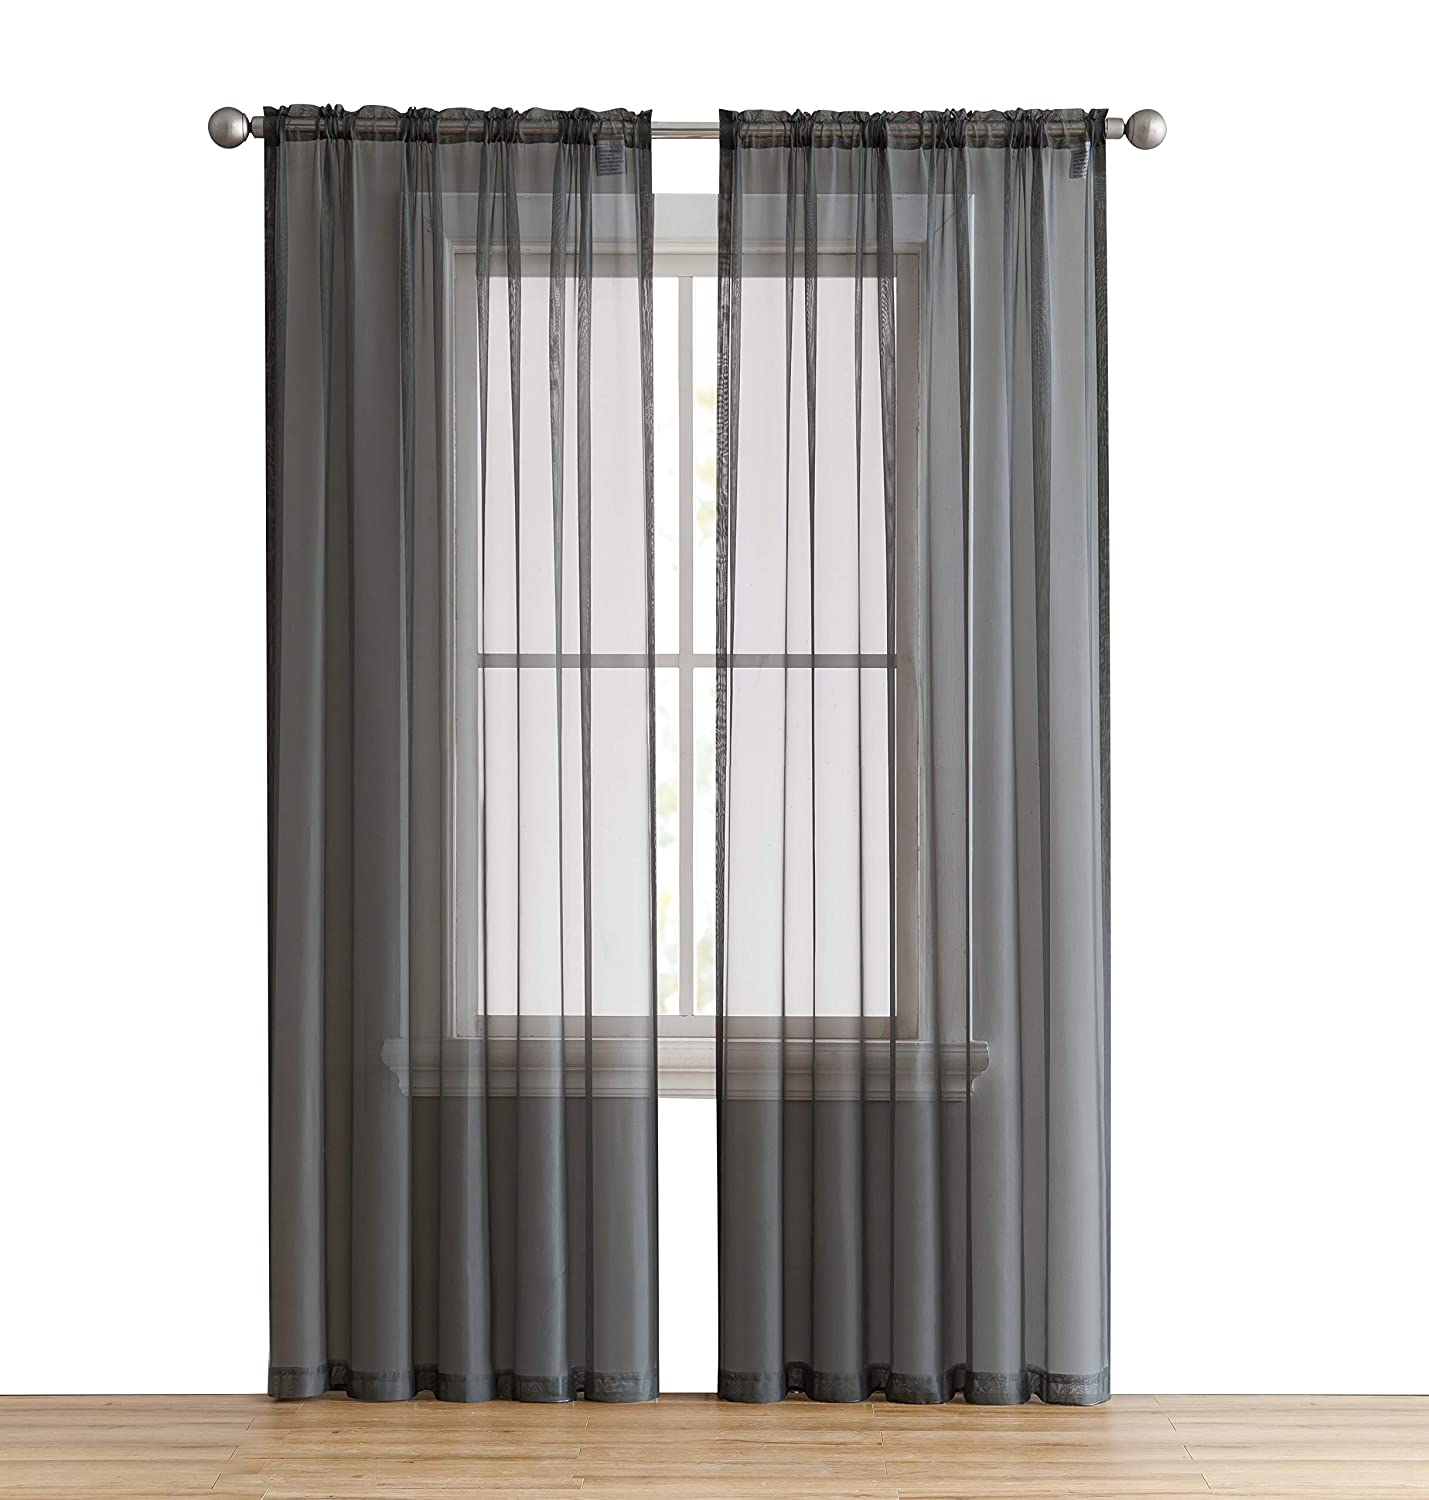 HLC.ME Ivory 54 inch x 45 inch Window Curtain Sheer Voile Panels for Kids Room, Kitchen, Living Room & Bedroom, Set of 2